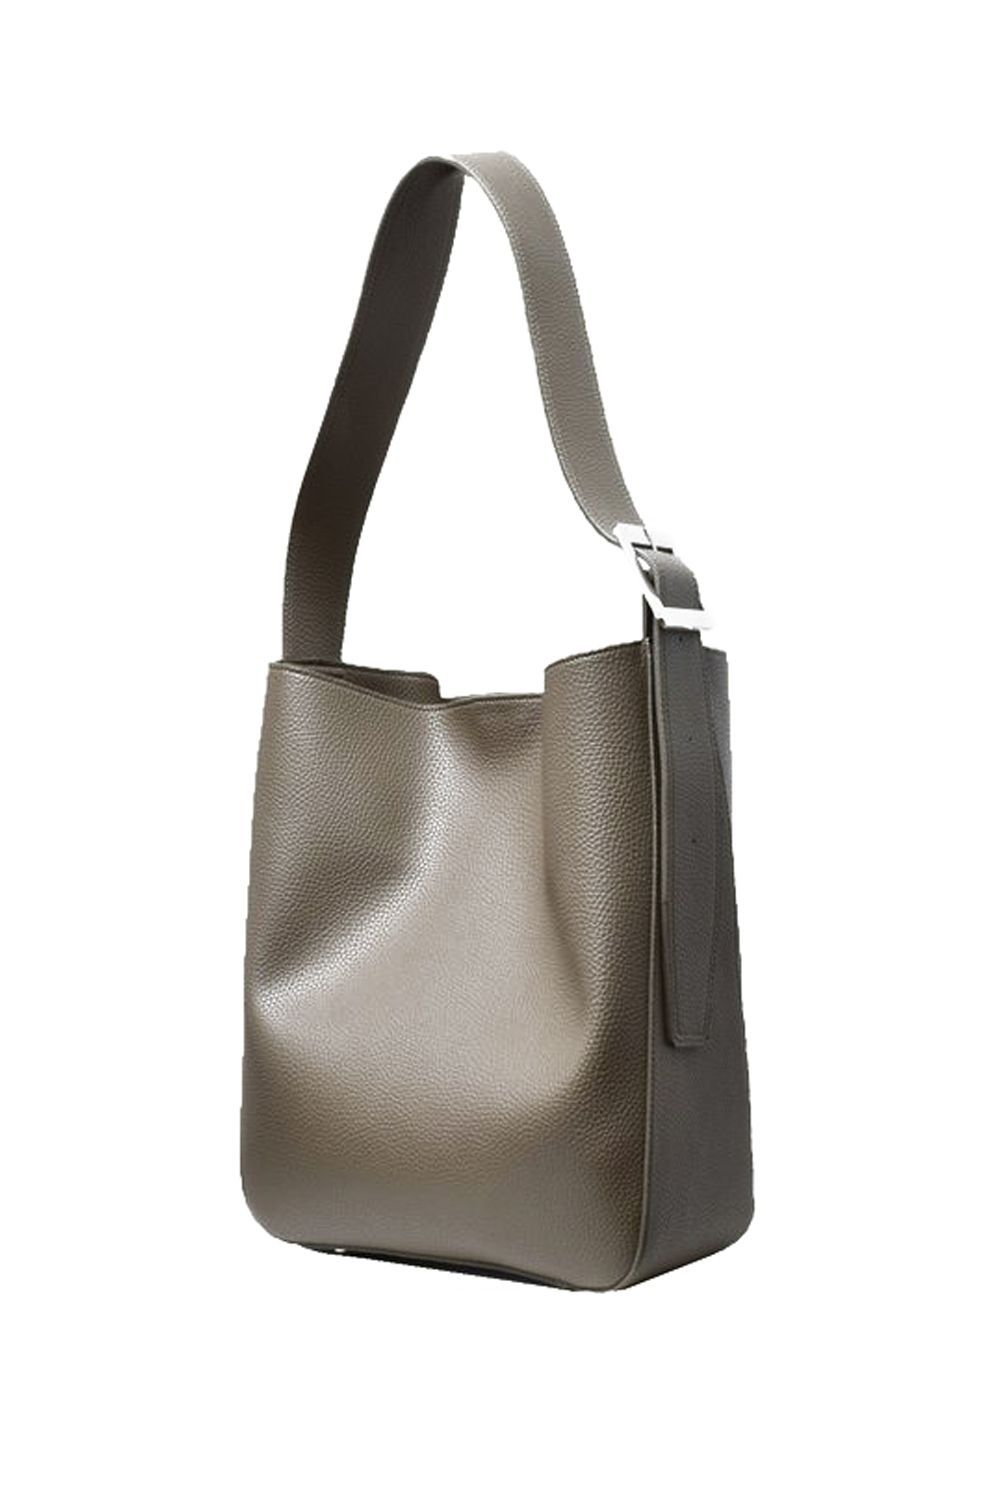 Modern and Spacious Angela Roi $240.00 SHOP IT For the women who carry their entire lives around in their bags, this Angela Roi one has more space than you'll ever need—in handcrafted vegan leather, nonetheless.